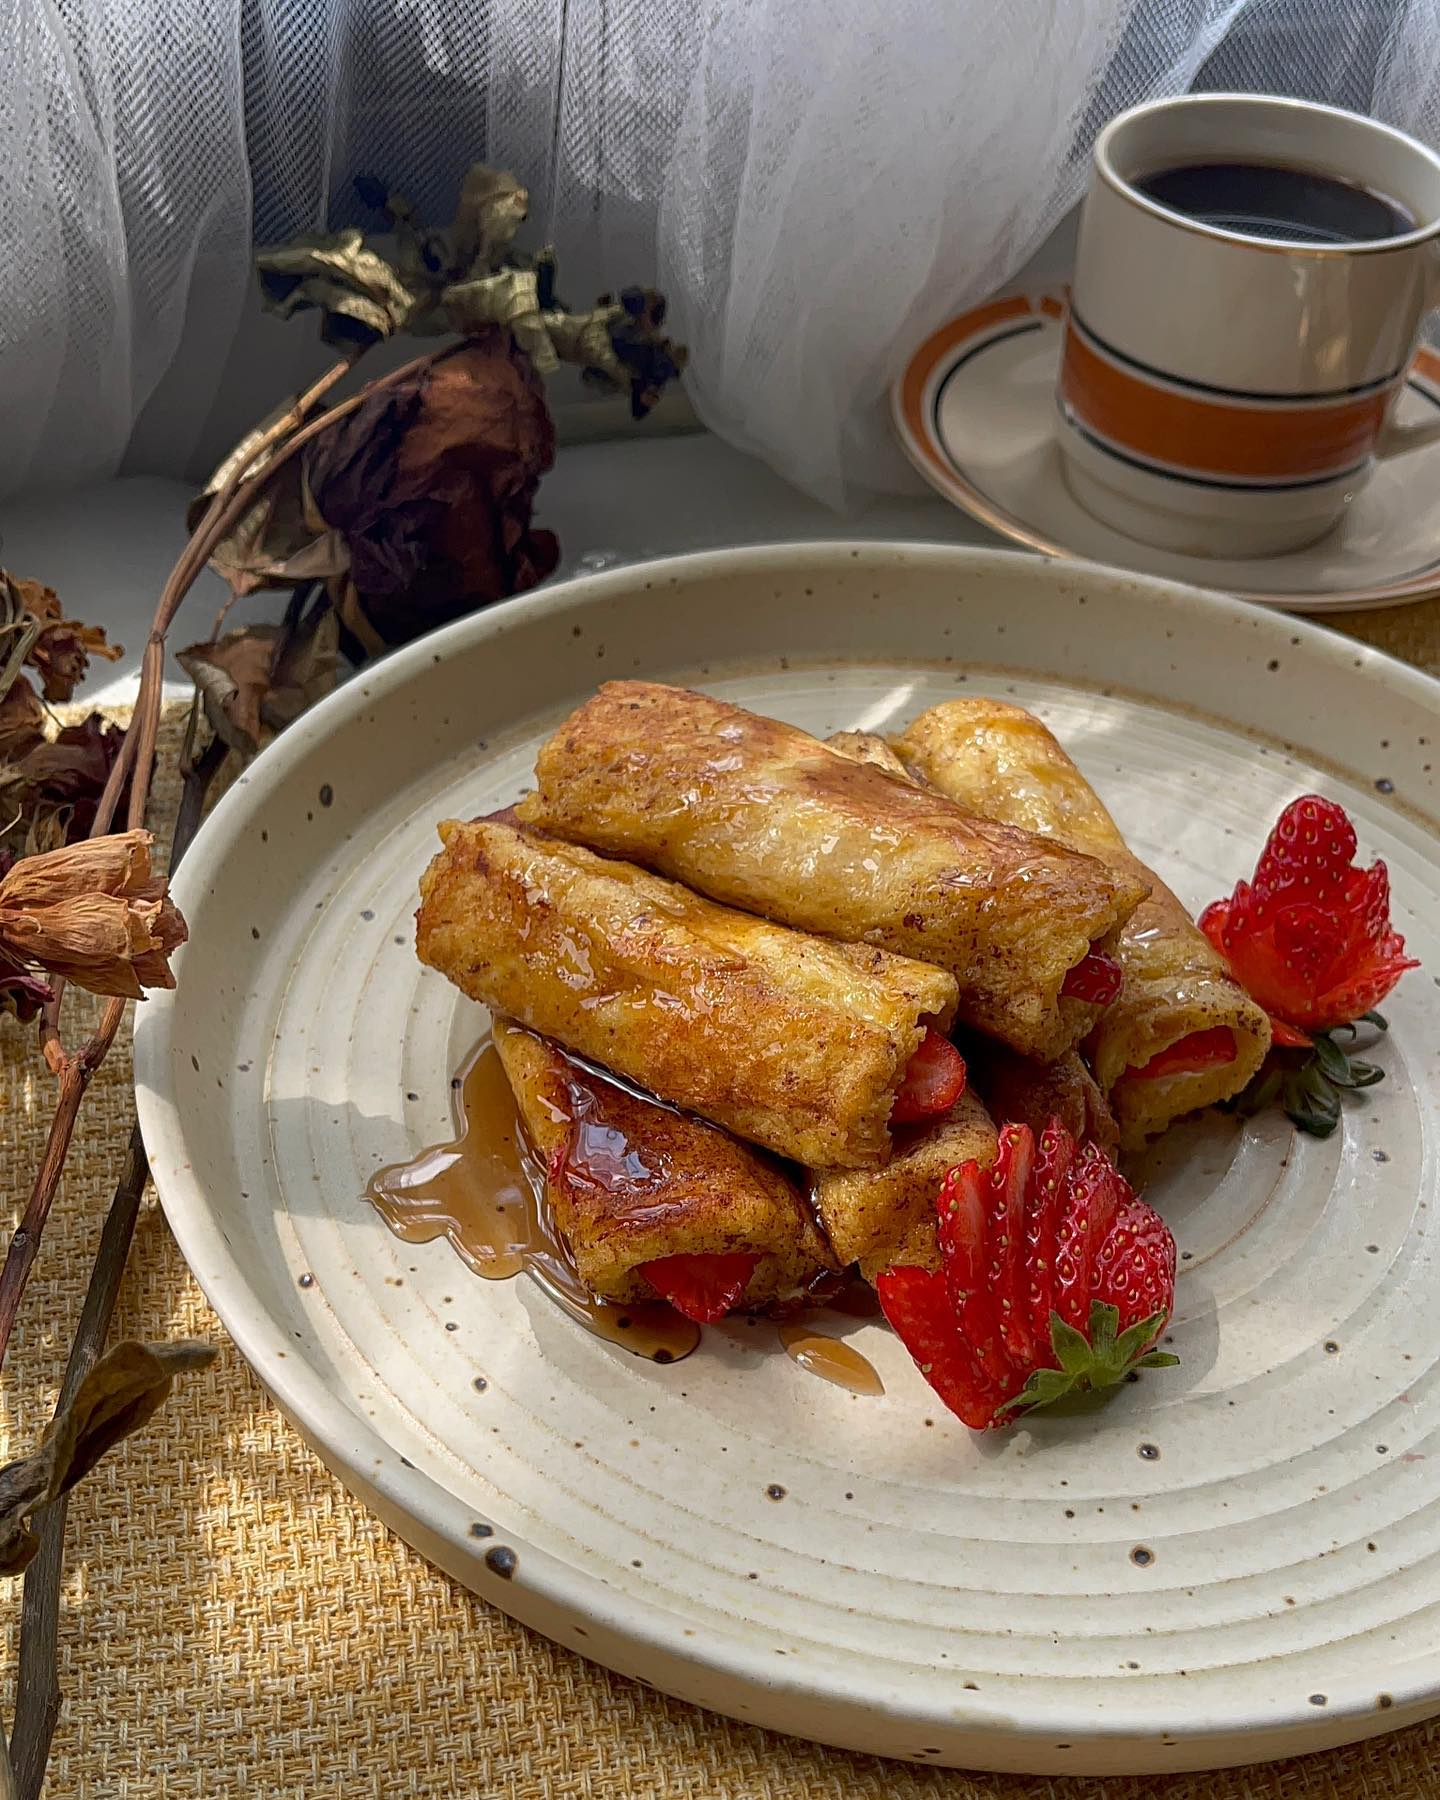 Strawberry stuffed french toast with cream cheese